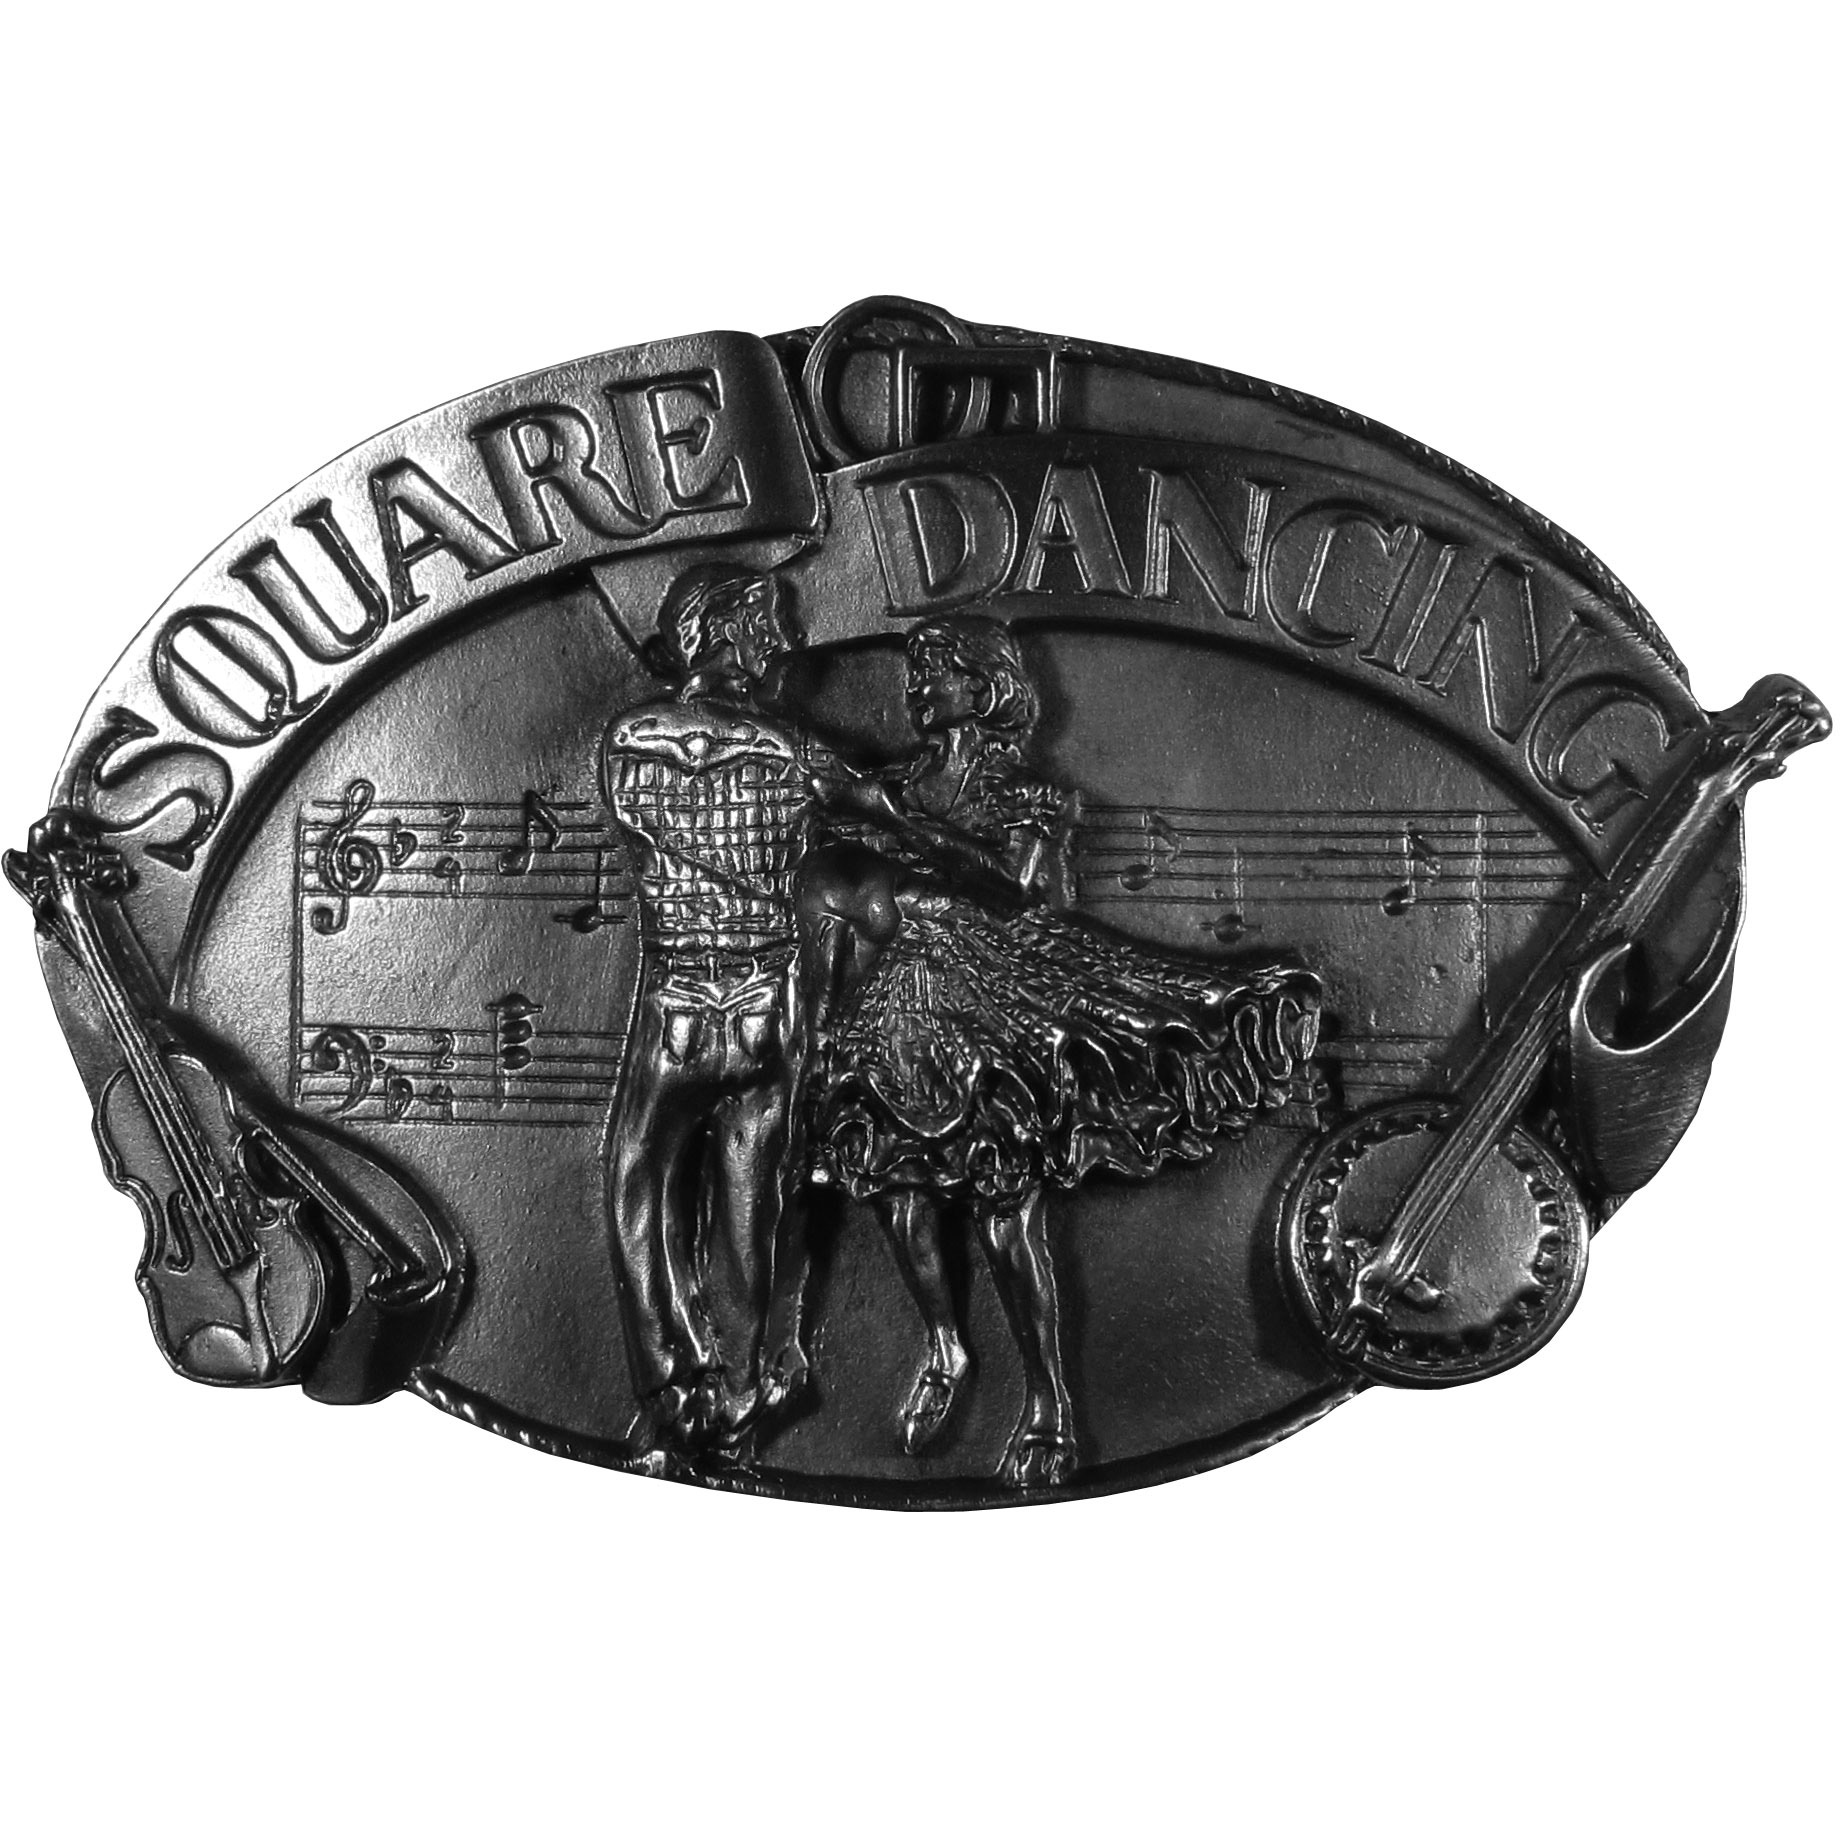 "Square Dancing Antiqued Belt Buckle - ""Do you love square dancing?  This belt buckle is for you!  ""Square Dancing"" is written across the top in bold with a couple square dancing below and a fiddle and banjo on the sides and musical notes in the background.  On the back are the words, """"Square dance is an American form of folk dance done by four couples in a square formation.  Square dancing is a great recreational activity that is best described in live words: it's a lot of fun!"""""""